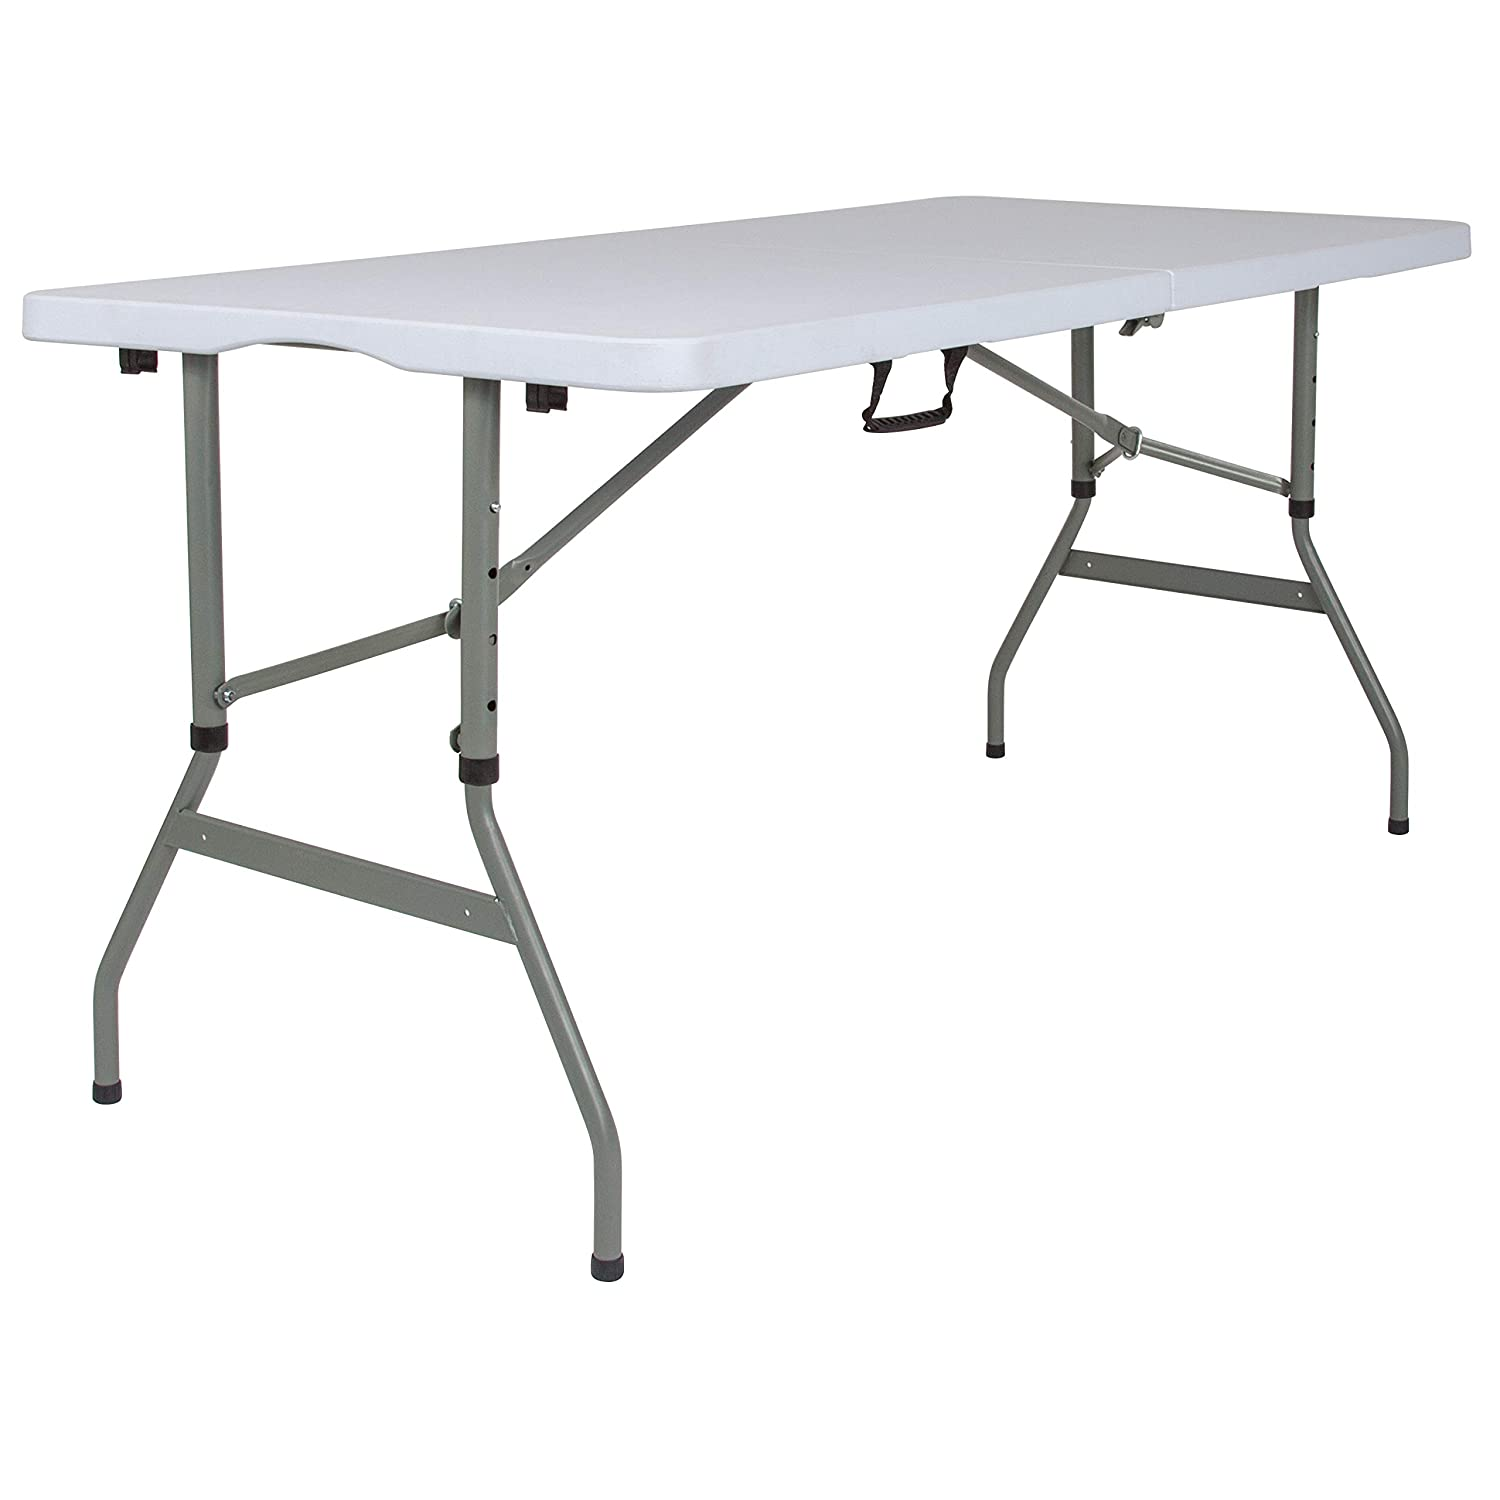 Flash Furniture 5-Foot Height Adjustable Bi-Fold Granite White Plastic Banquet and Event Folding Table with Carrying Handle